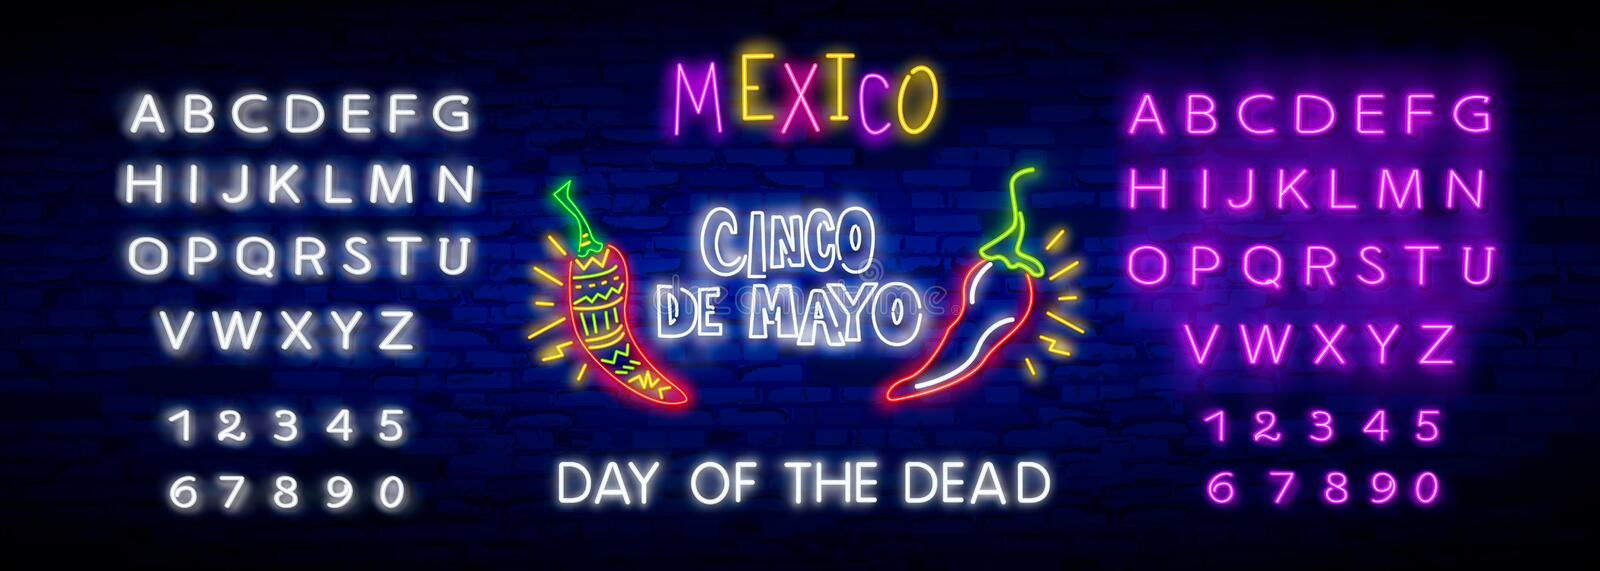 Neon Mexican icons. Icon from Cinco De Mayo. Mexico neon sign. Day of the Dead Dia de Muertos . Neon sign, bright signboard, light. Skull neon sign. Day of the royalty free illustration